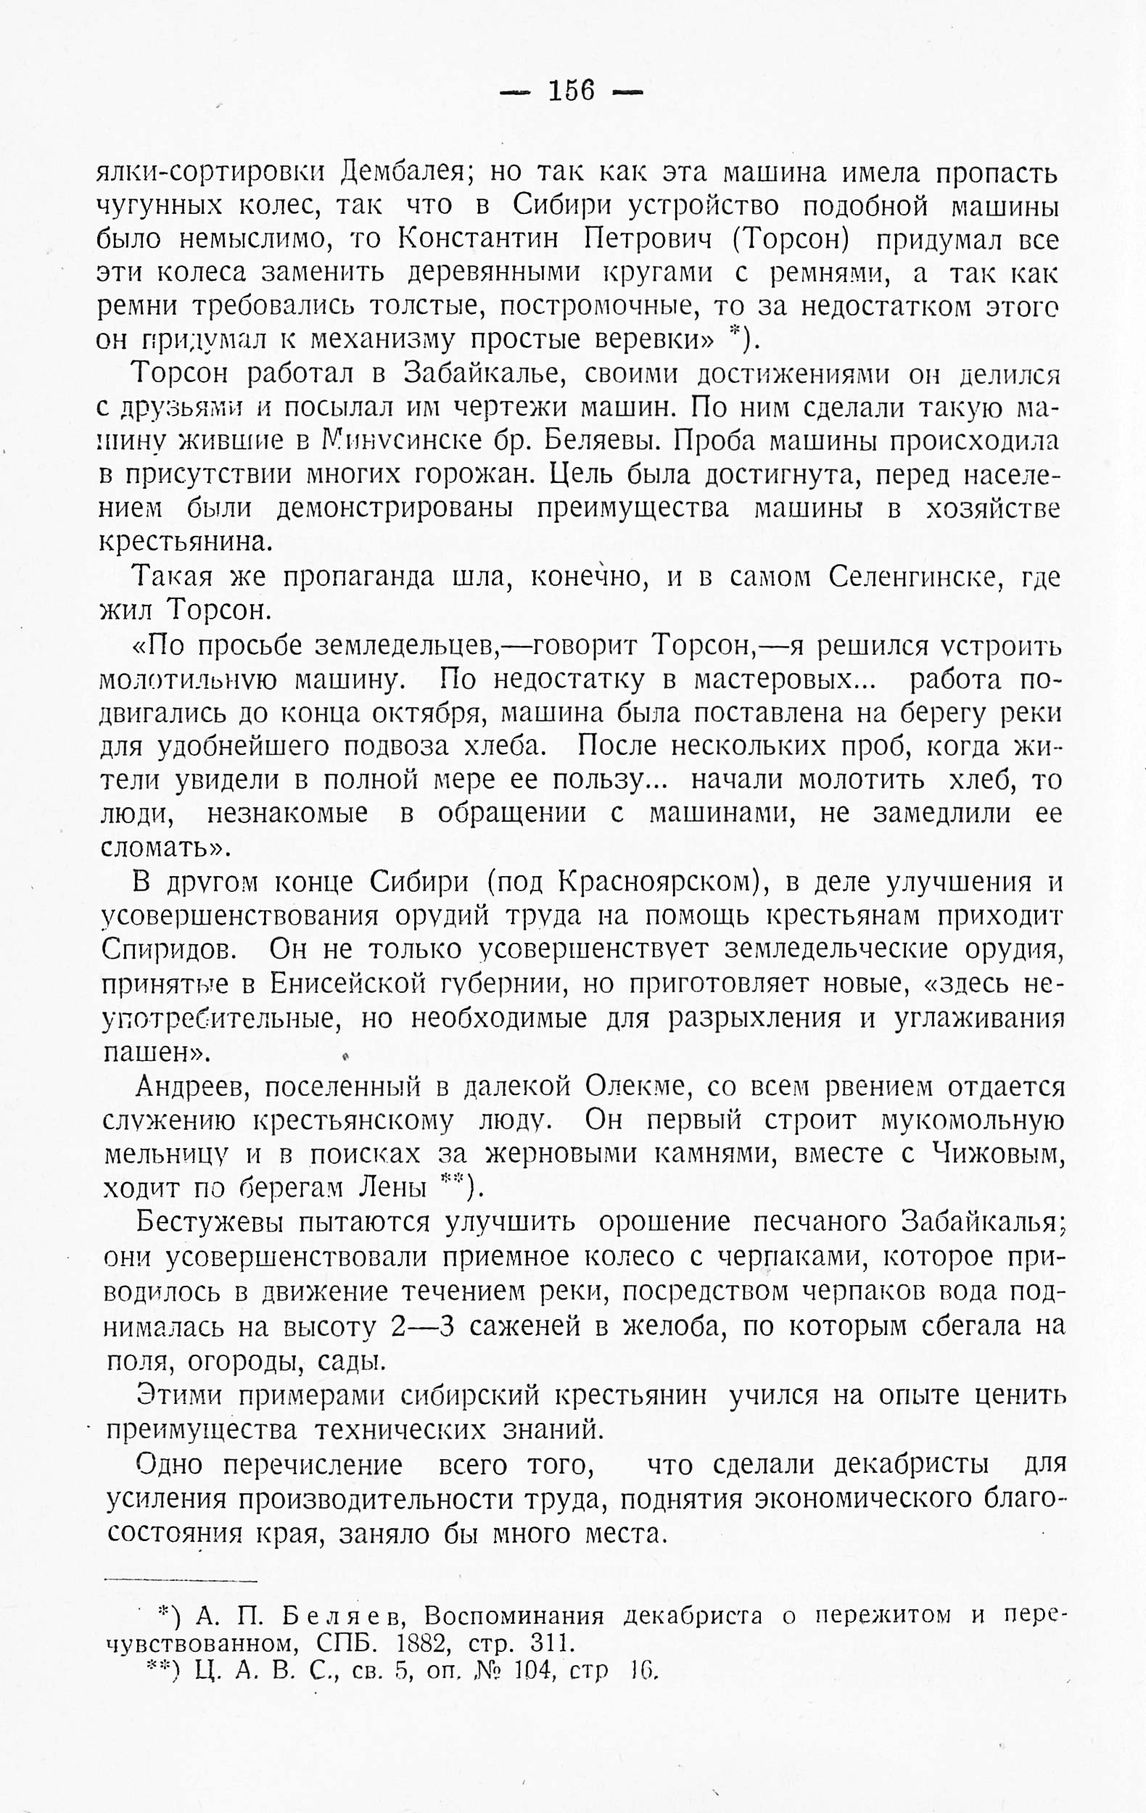 http://elib.shpl.ru/pages/543406/zooms/7